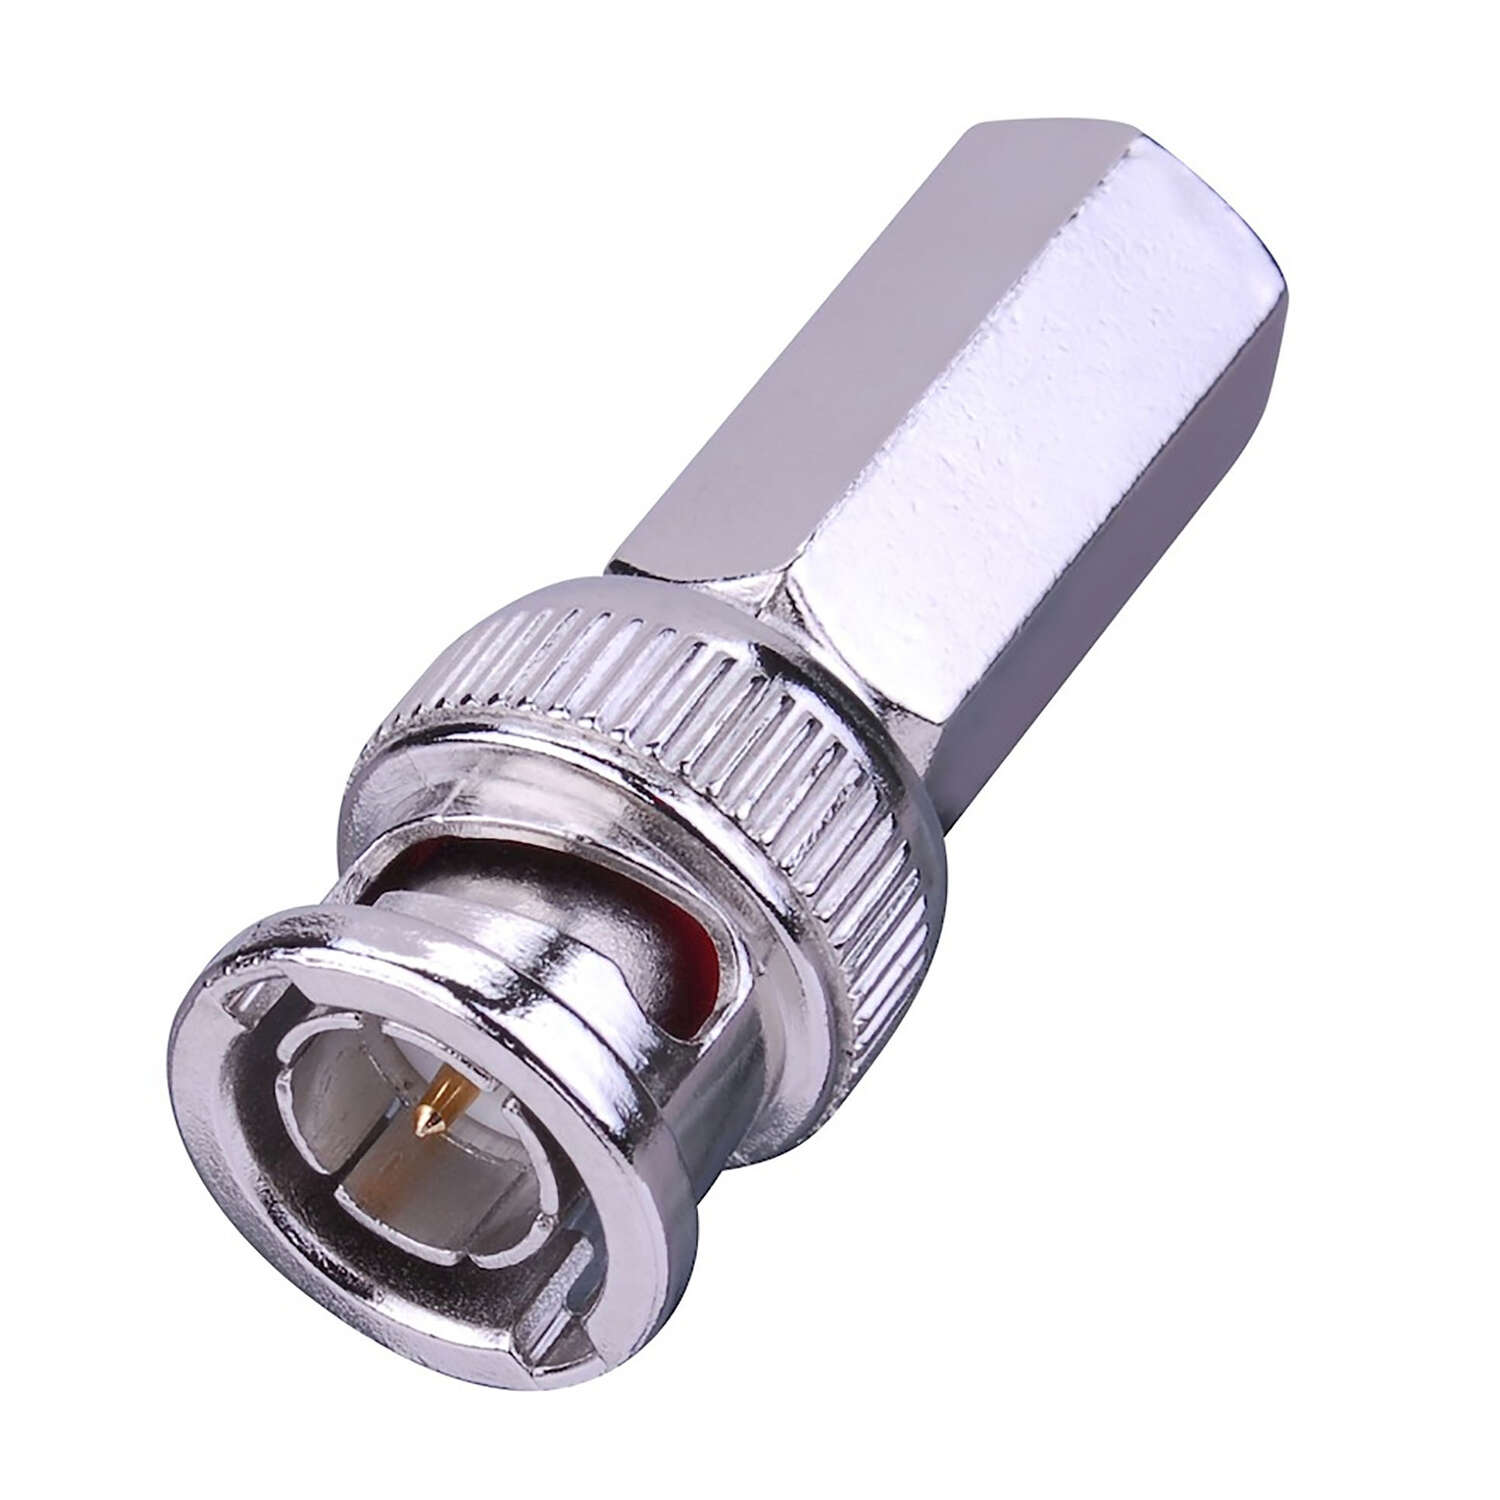 Just Hook It Up  Twist-On  RG59  Coaxial Connector  2 pk